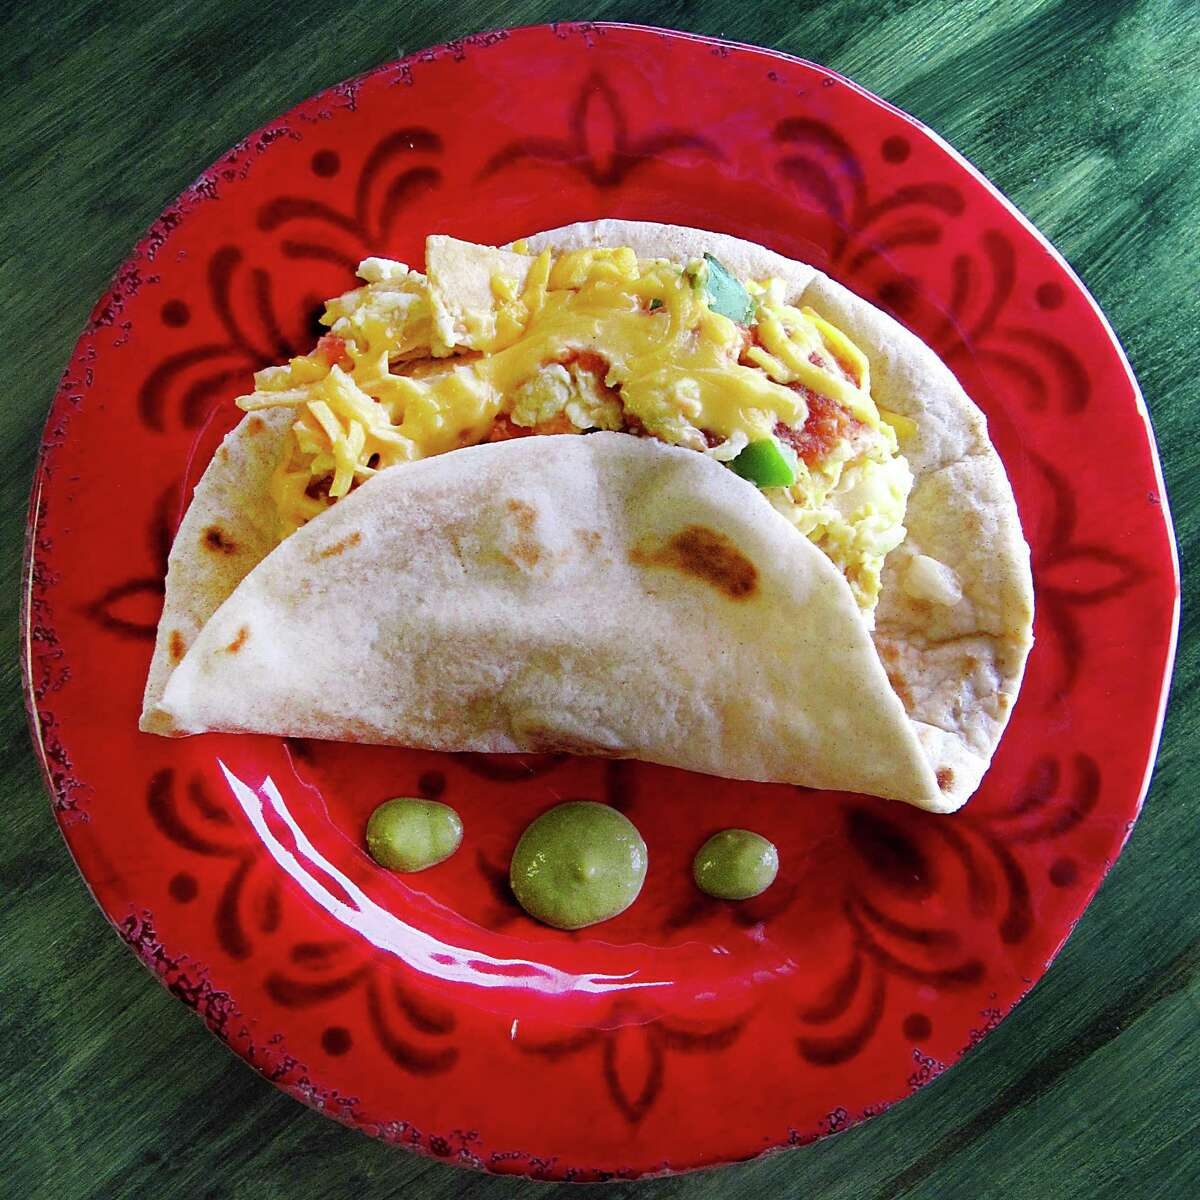 Taco of the Week: Chilaquiles taco on a handmade flour tortilla from Claudia's Restaurant on Pleasanton Road.